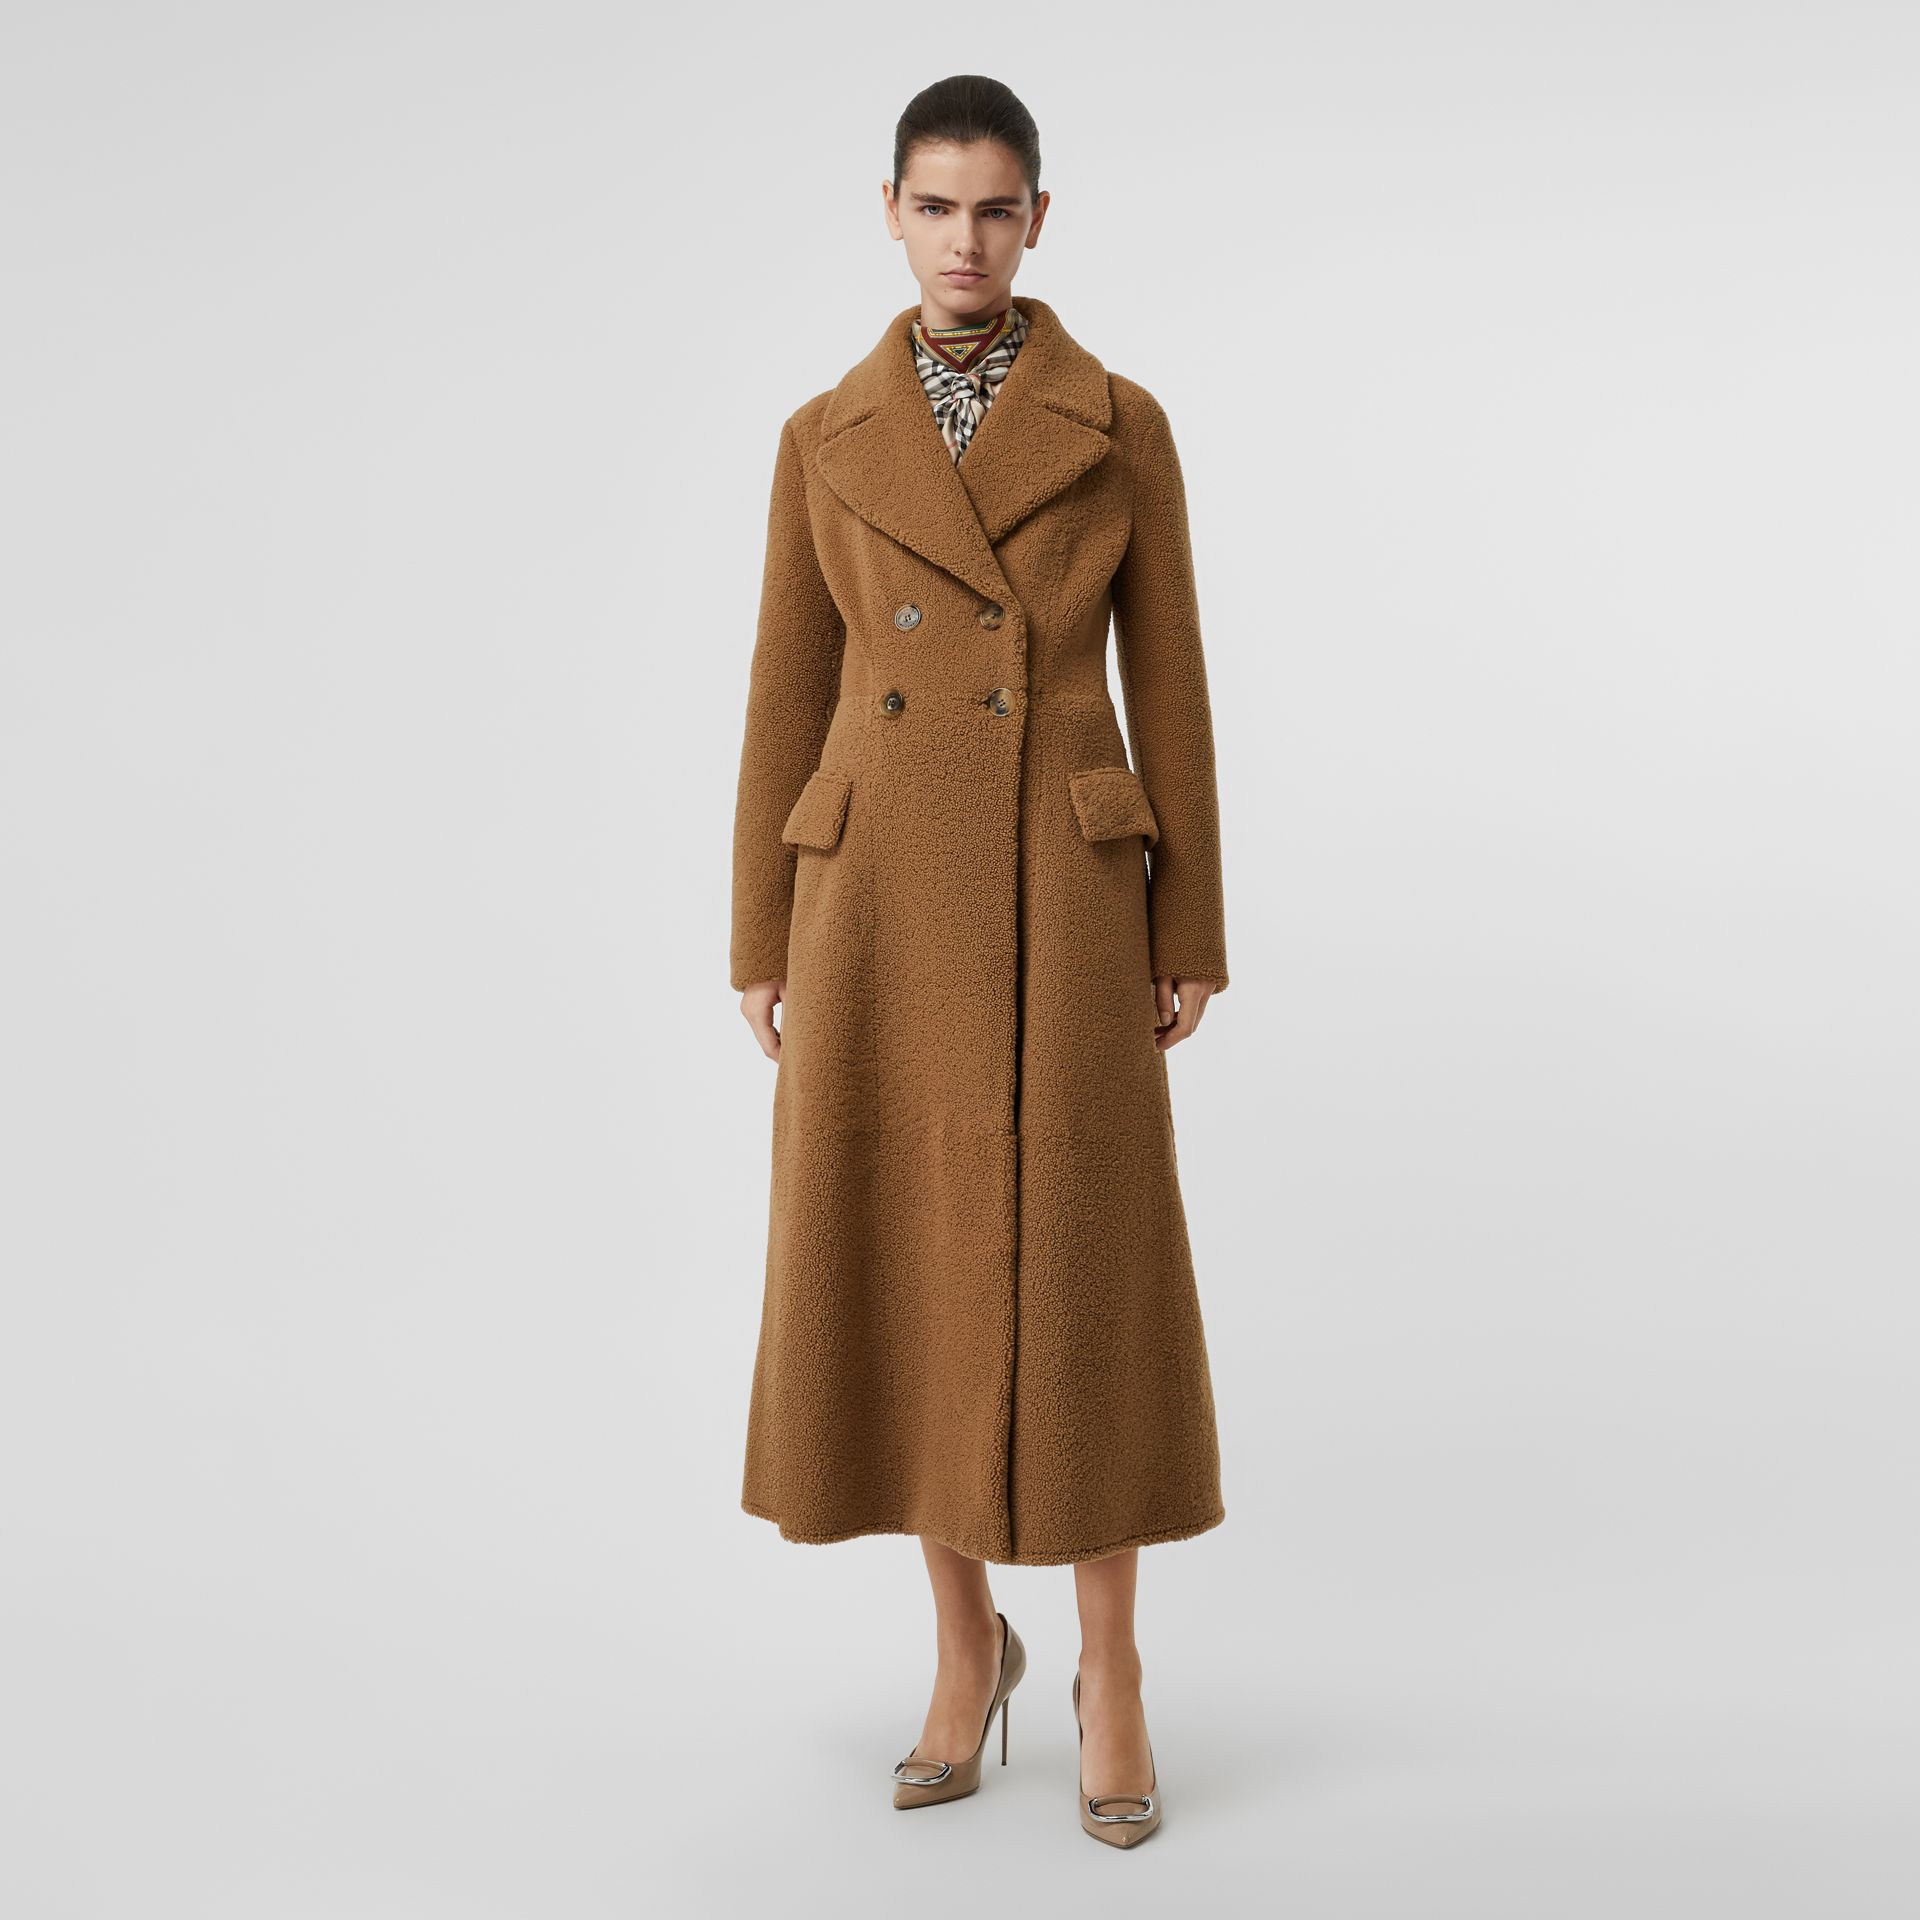 Shearling Tailored Coat in Caramel - Women | Burberry United States - gallery image 5